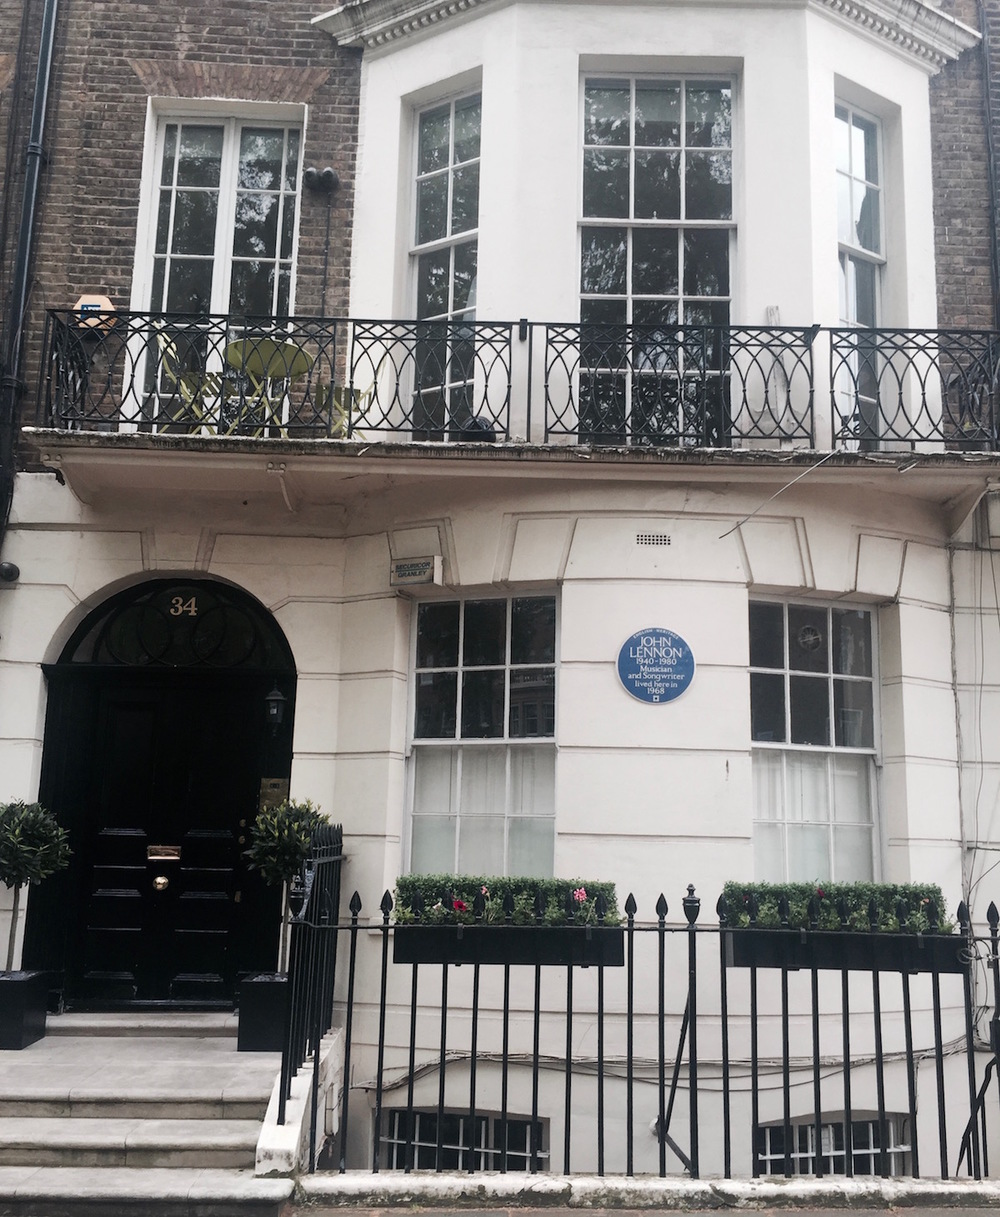 John Lennon's house in Marylebone, London